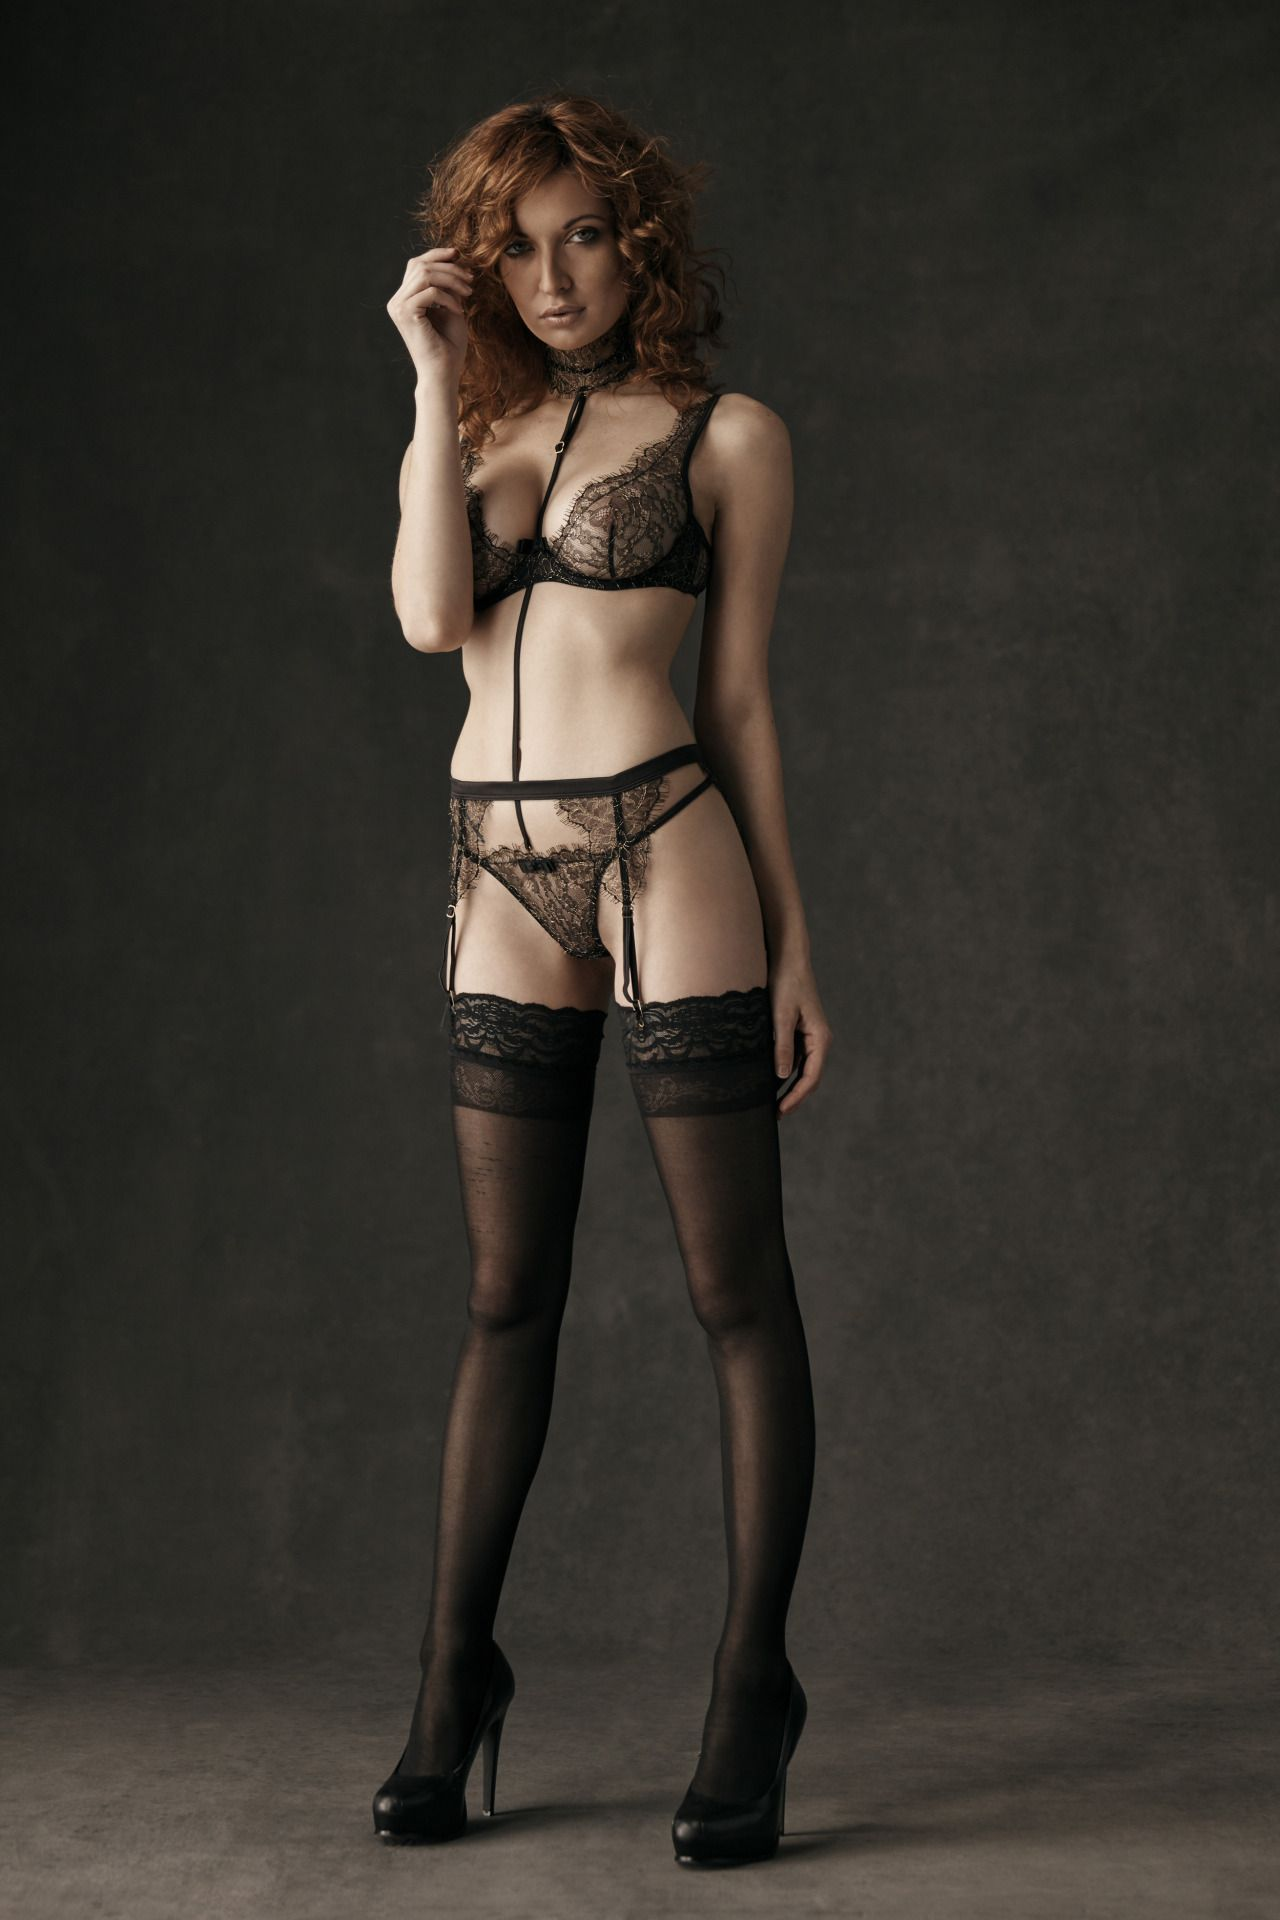 43587e6d68608 exclusivelyselectedlingerie  Richelle Oslinker (wearing Maison Close  lingerie) by Stowe Richards